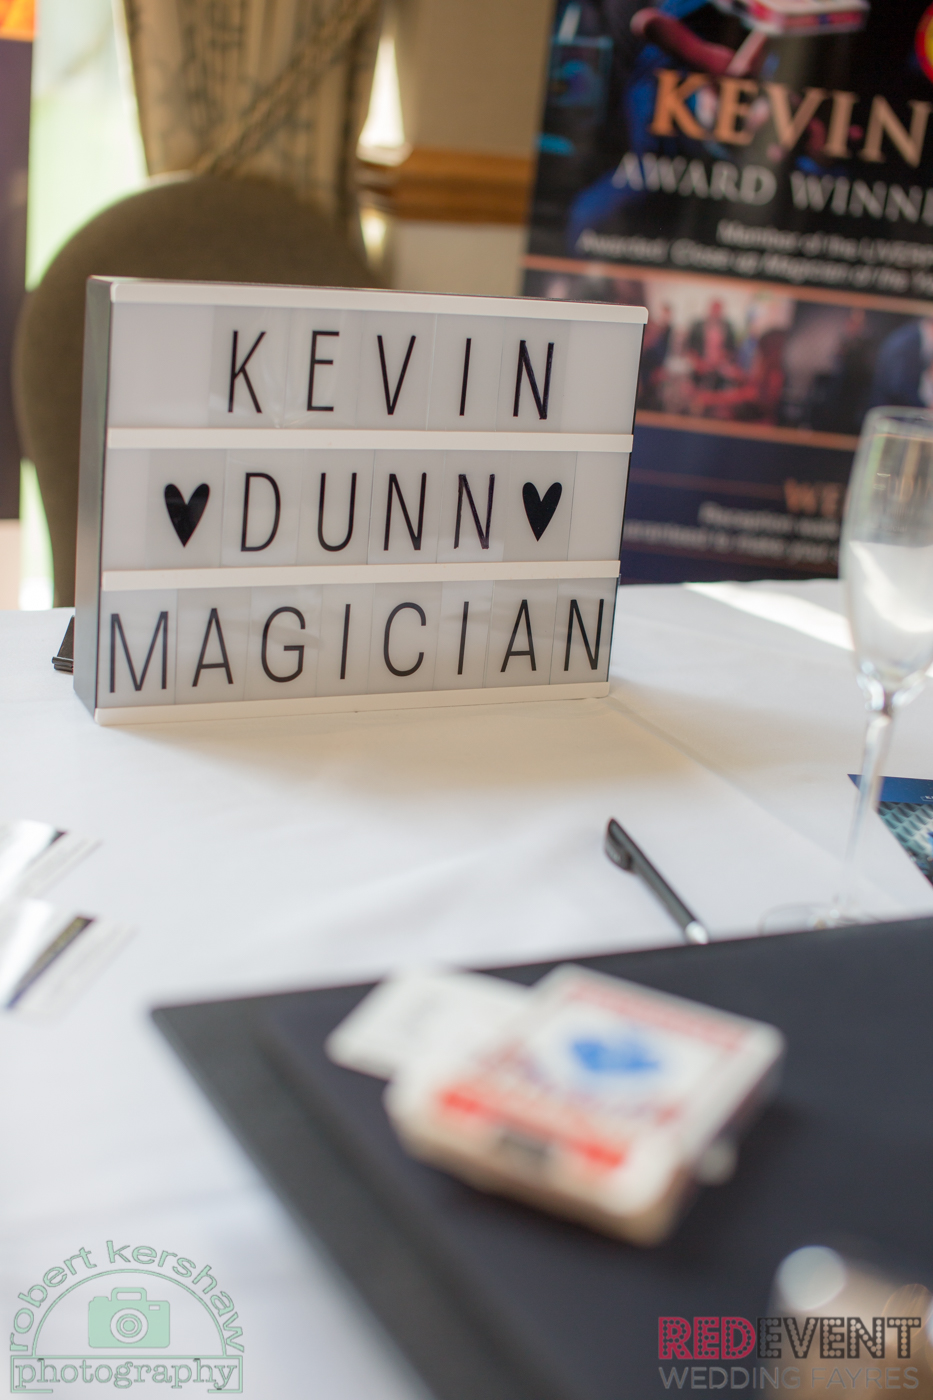 Kevin Dunn Magician RedEvent Wedding Fayres Holiday Inn Ellesmere Port Cheshire Oaks special offer www.redeventweddingfayres.com2.jpg